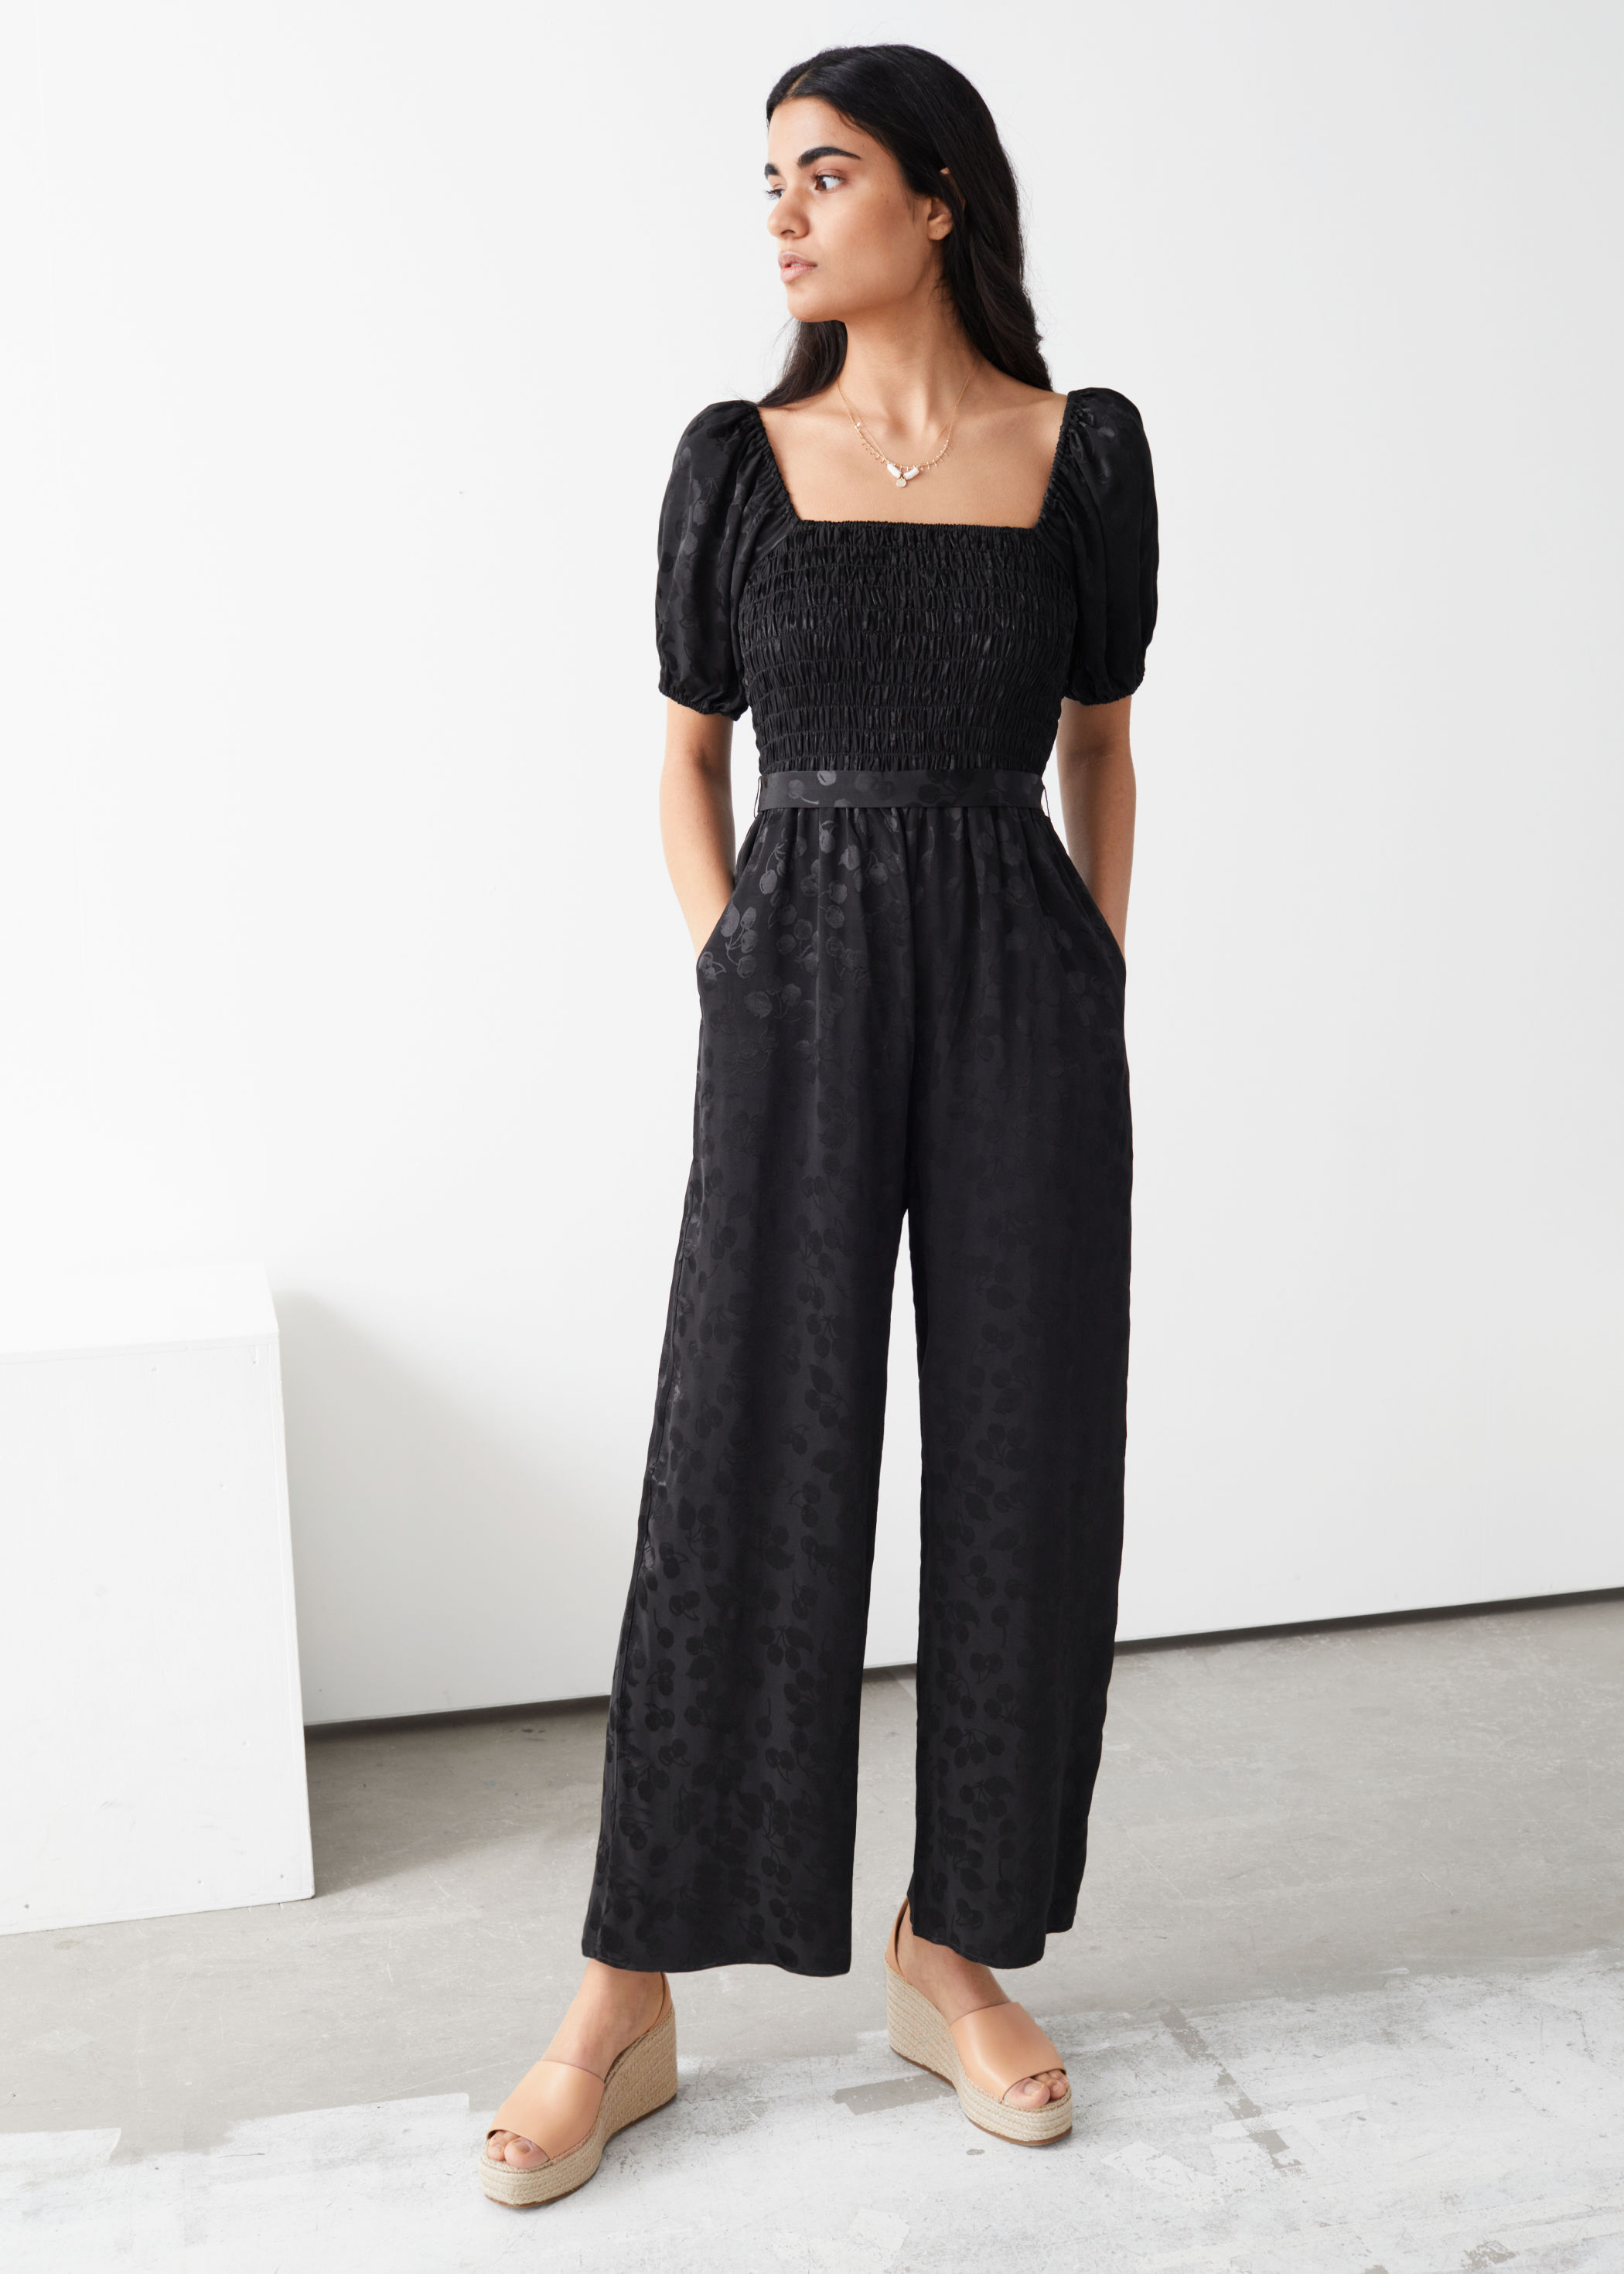 & Other Stories Smocked Jacquard Jumpsuit £49, was £95